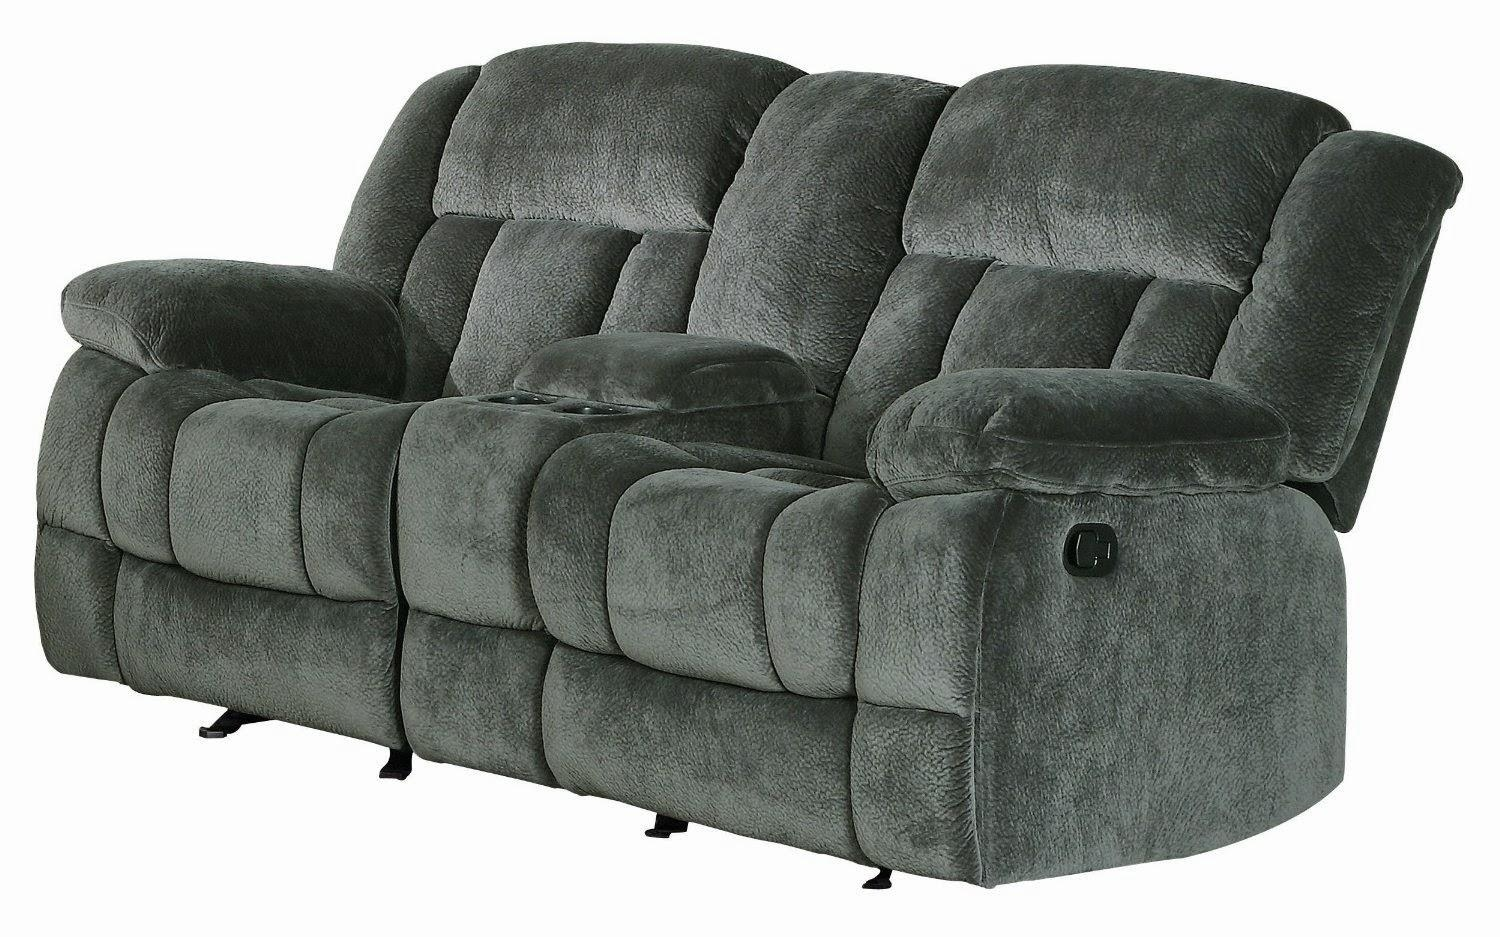 Sofas Center : Newport Piece Power Reclining Sofa With Console Regarding Newport Sofas (View 19 of 20)